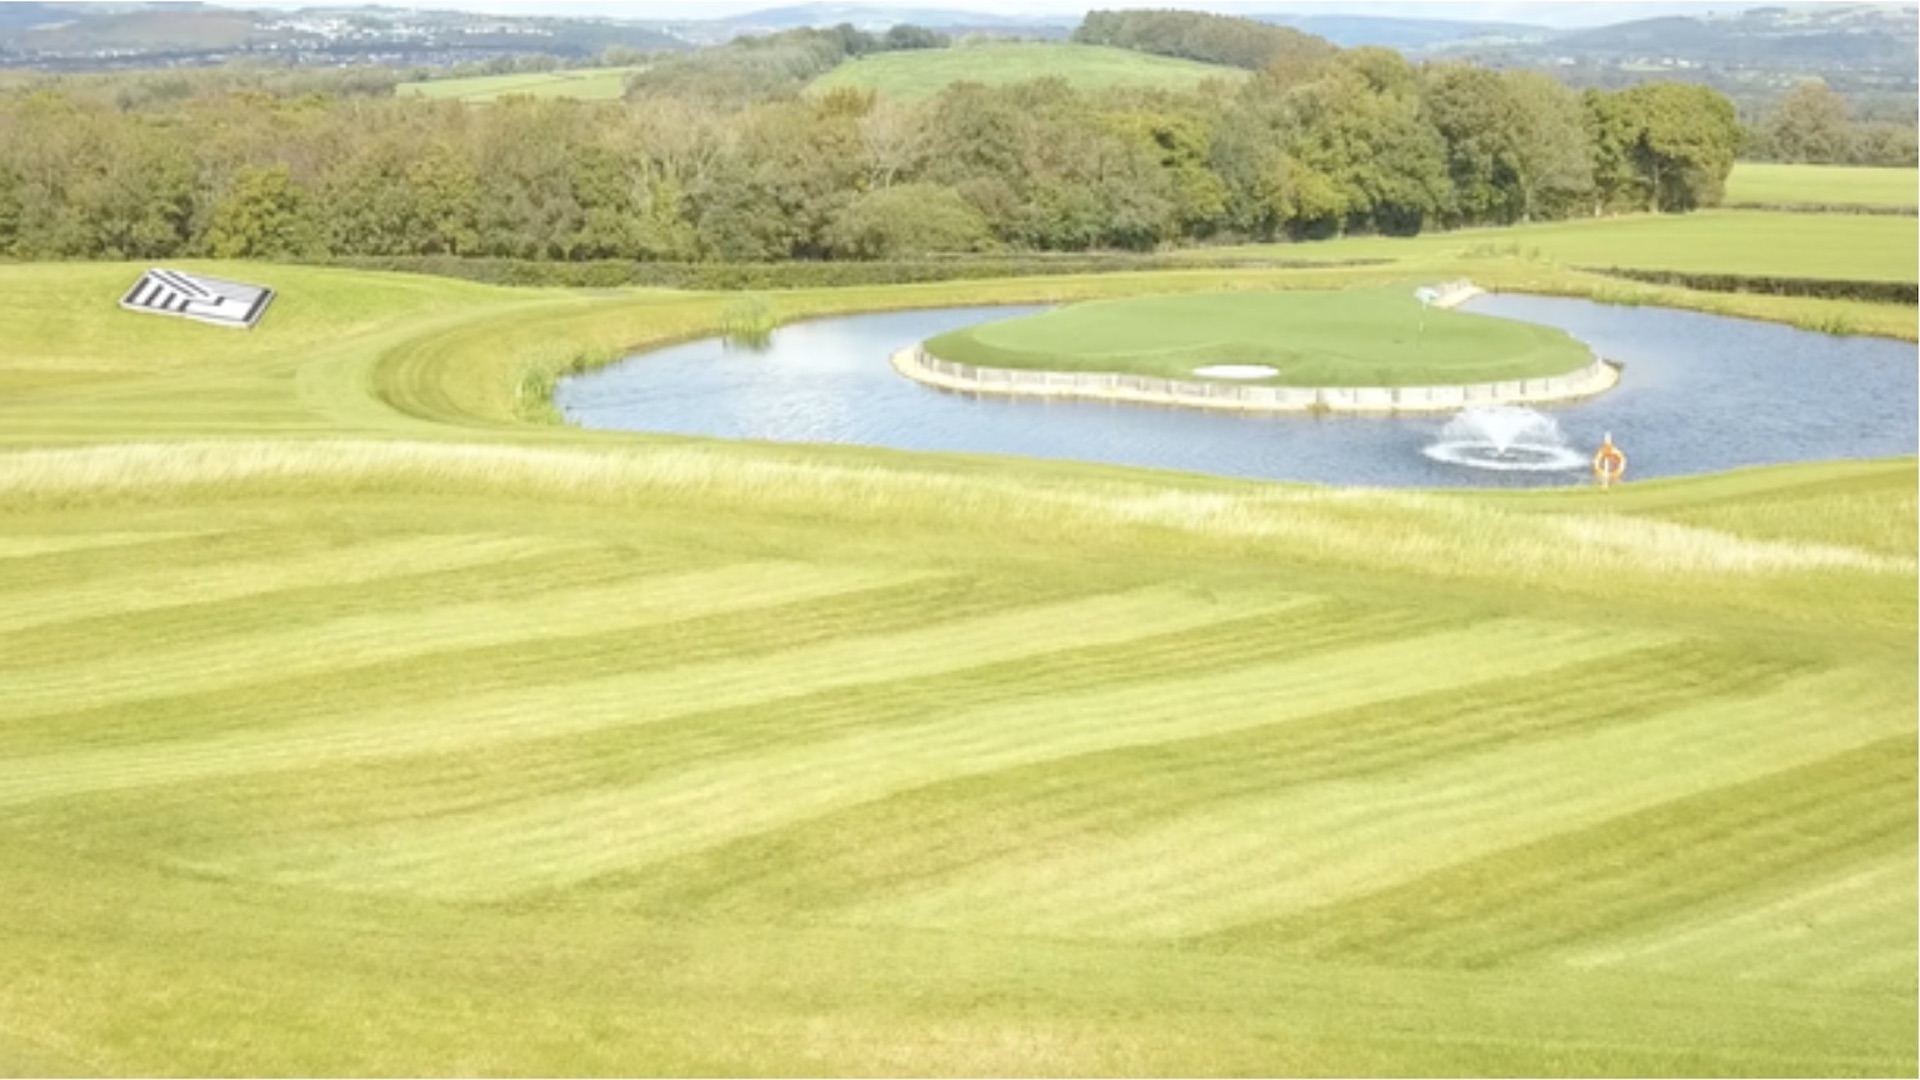 Gareth Bale's new personal golf course ready for action